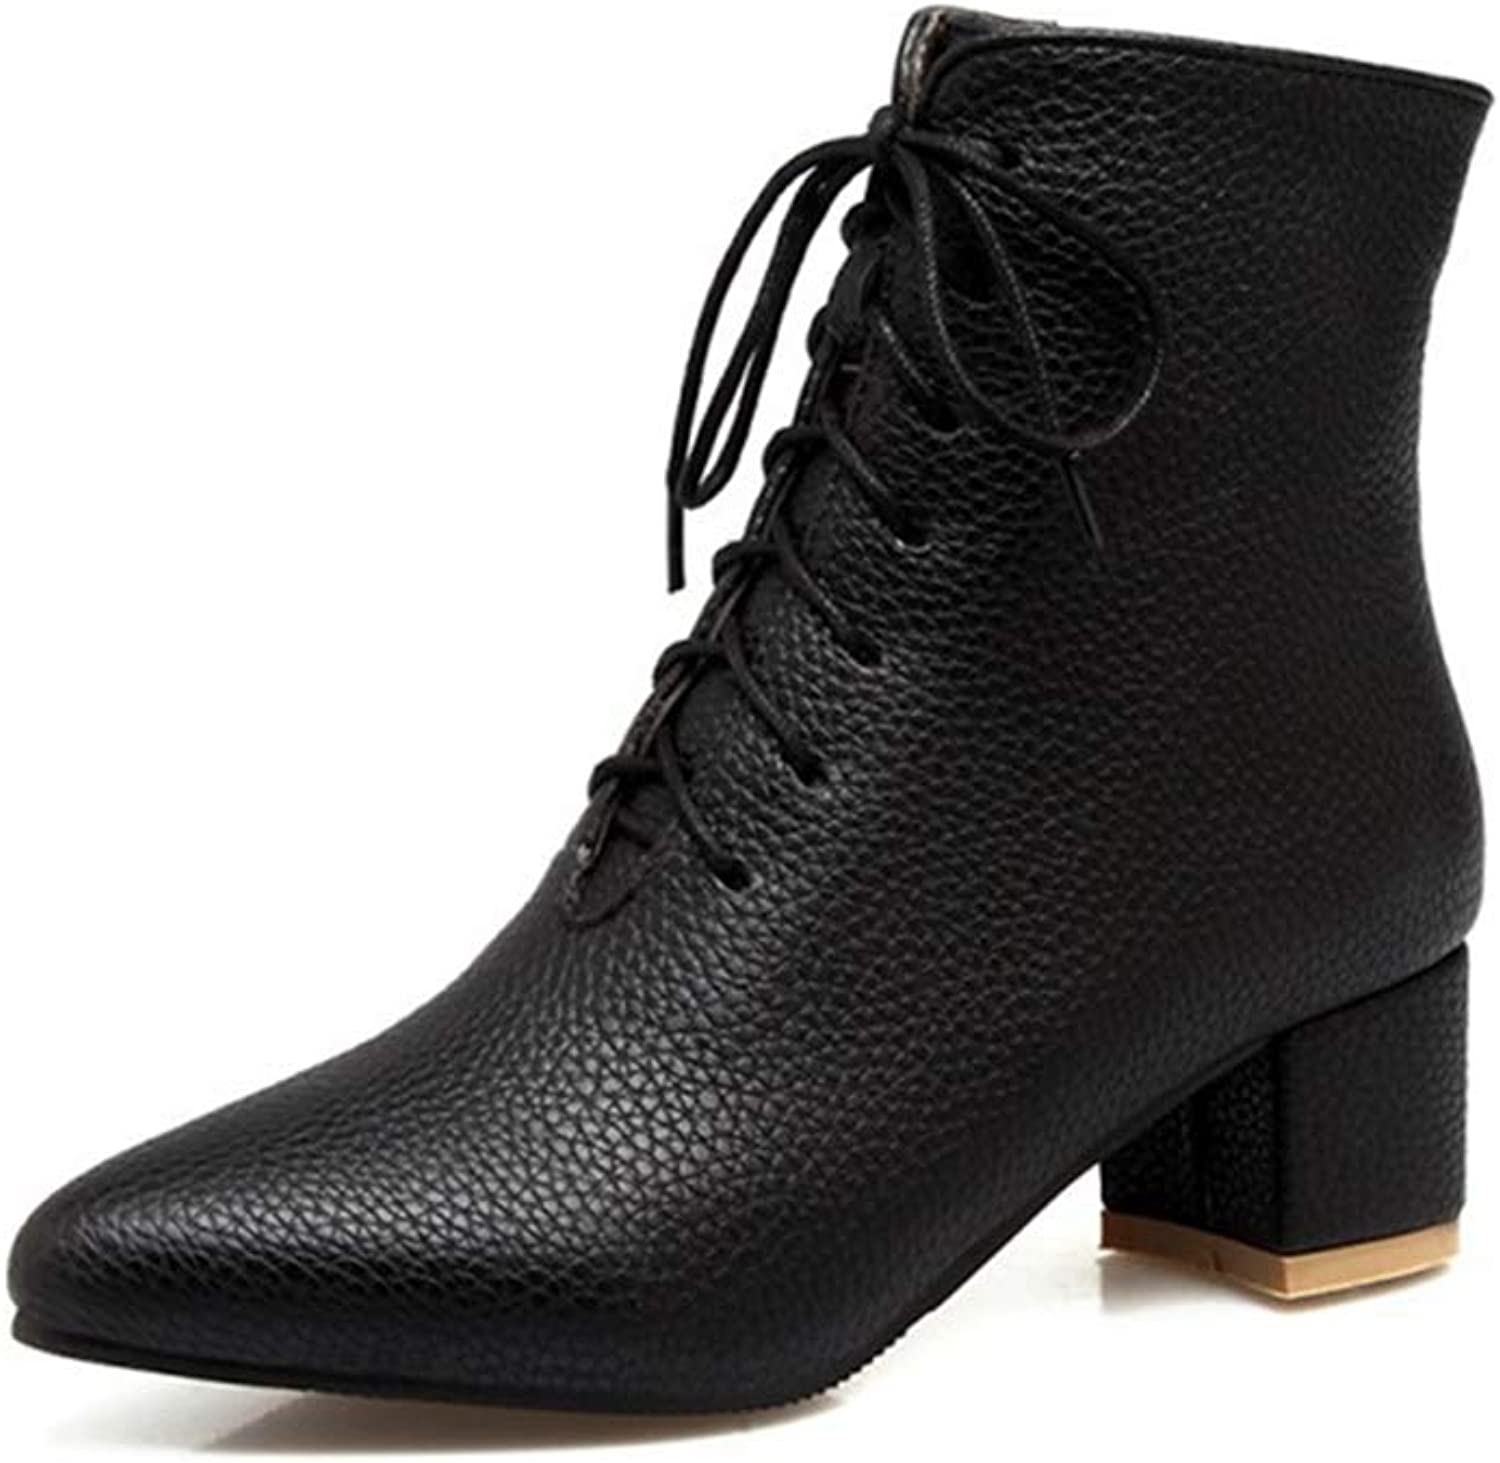 GIY Women's Pointed Toe Dressy Ankle Boots Lace Up Zipper Soft Leather Booties Block Low Heel Short Boots